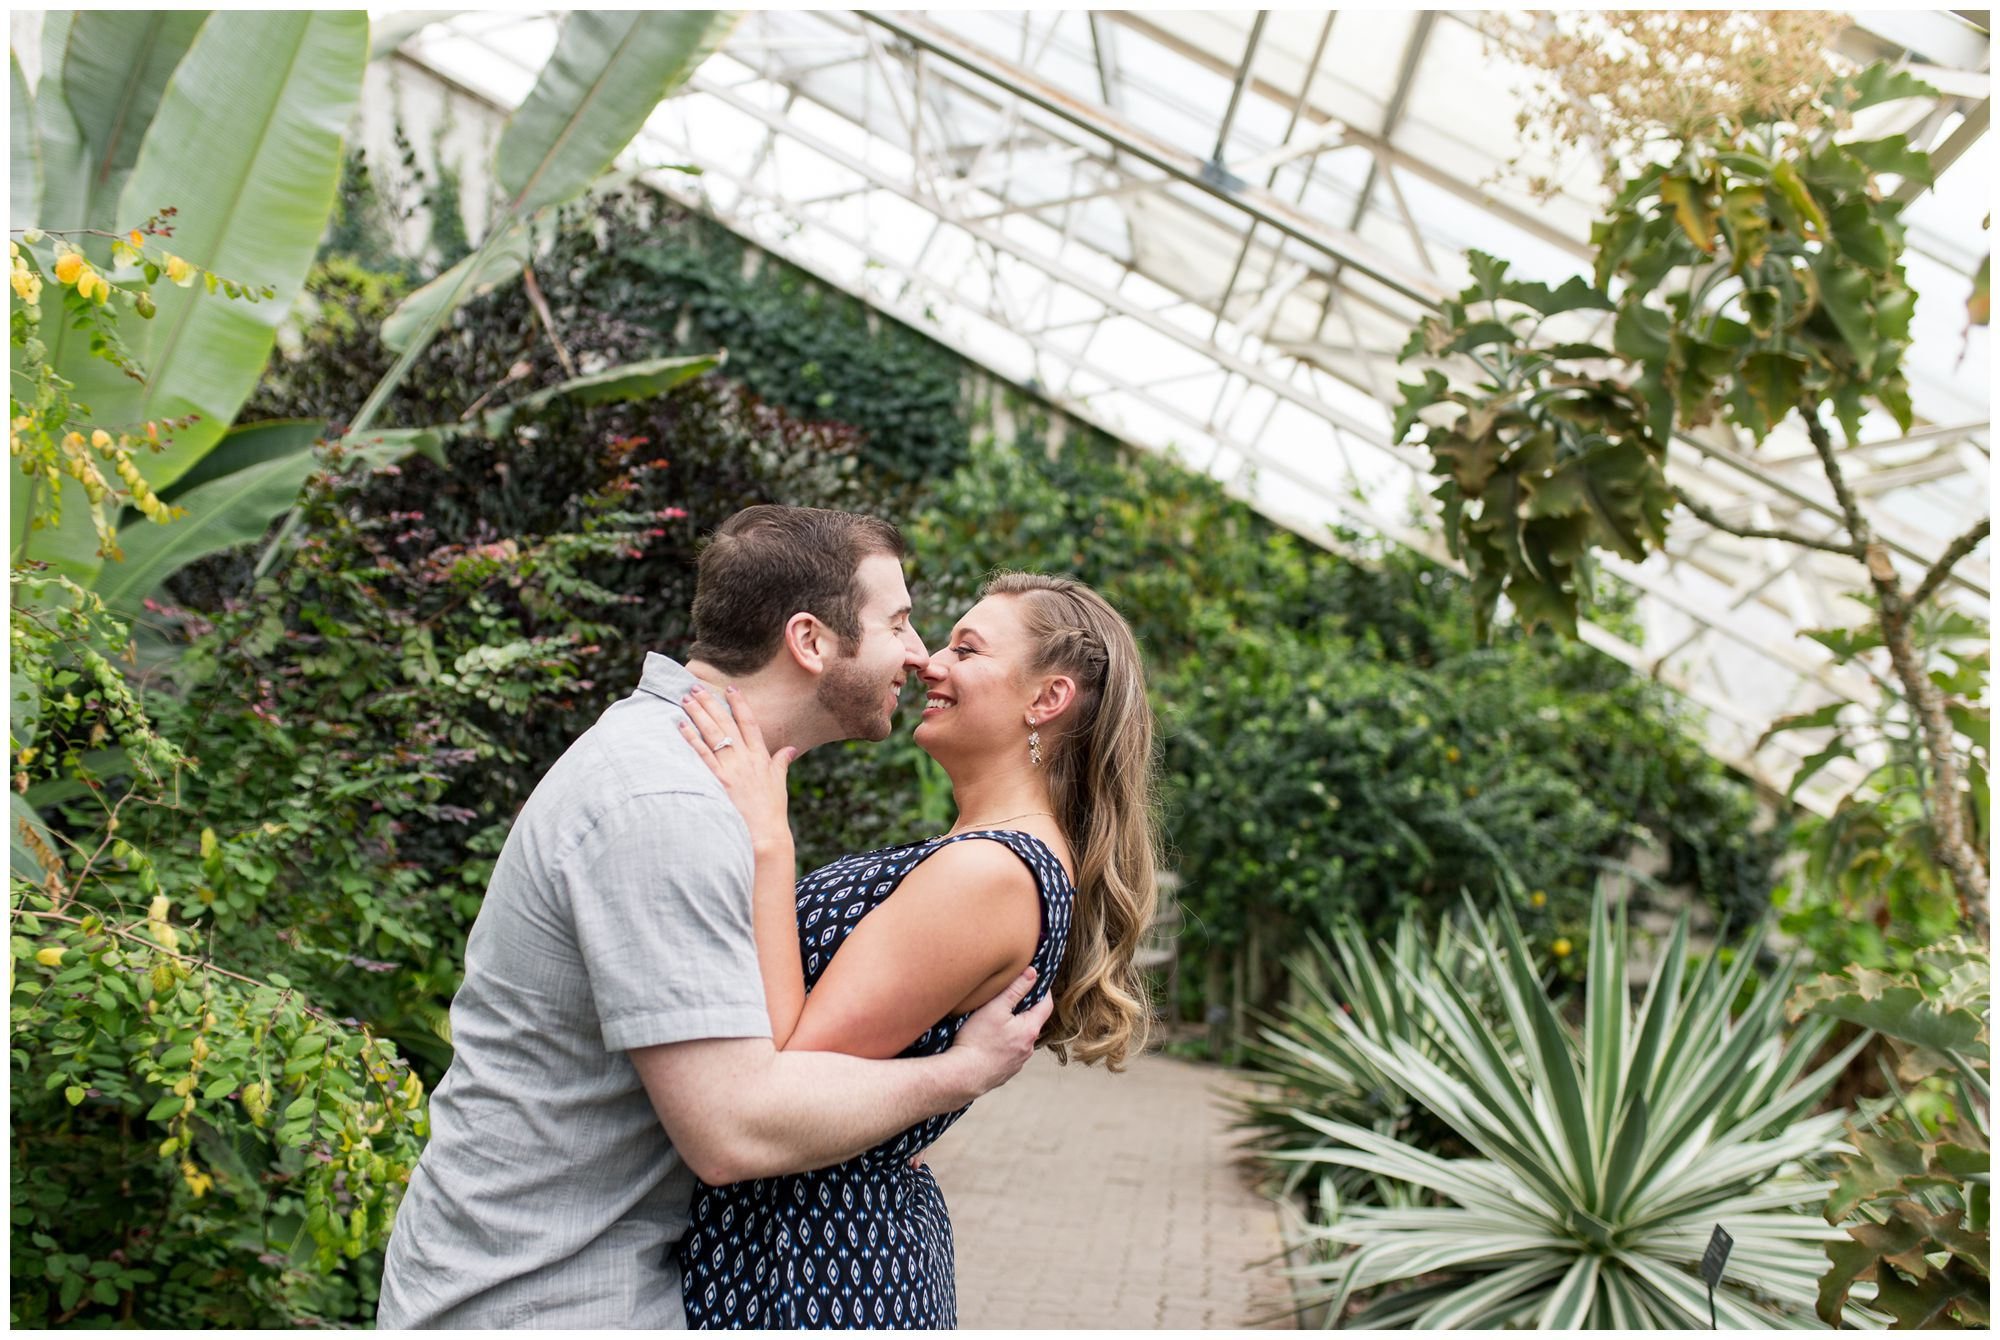 Genial Cassie U0026 Danu0027s Fort Wayne Botanical Garden Engagement | Autumn Howell  Photography